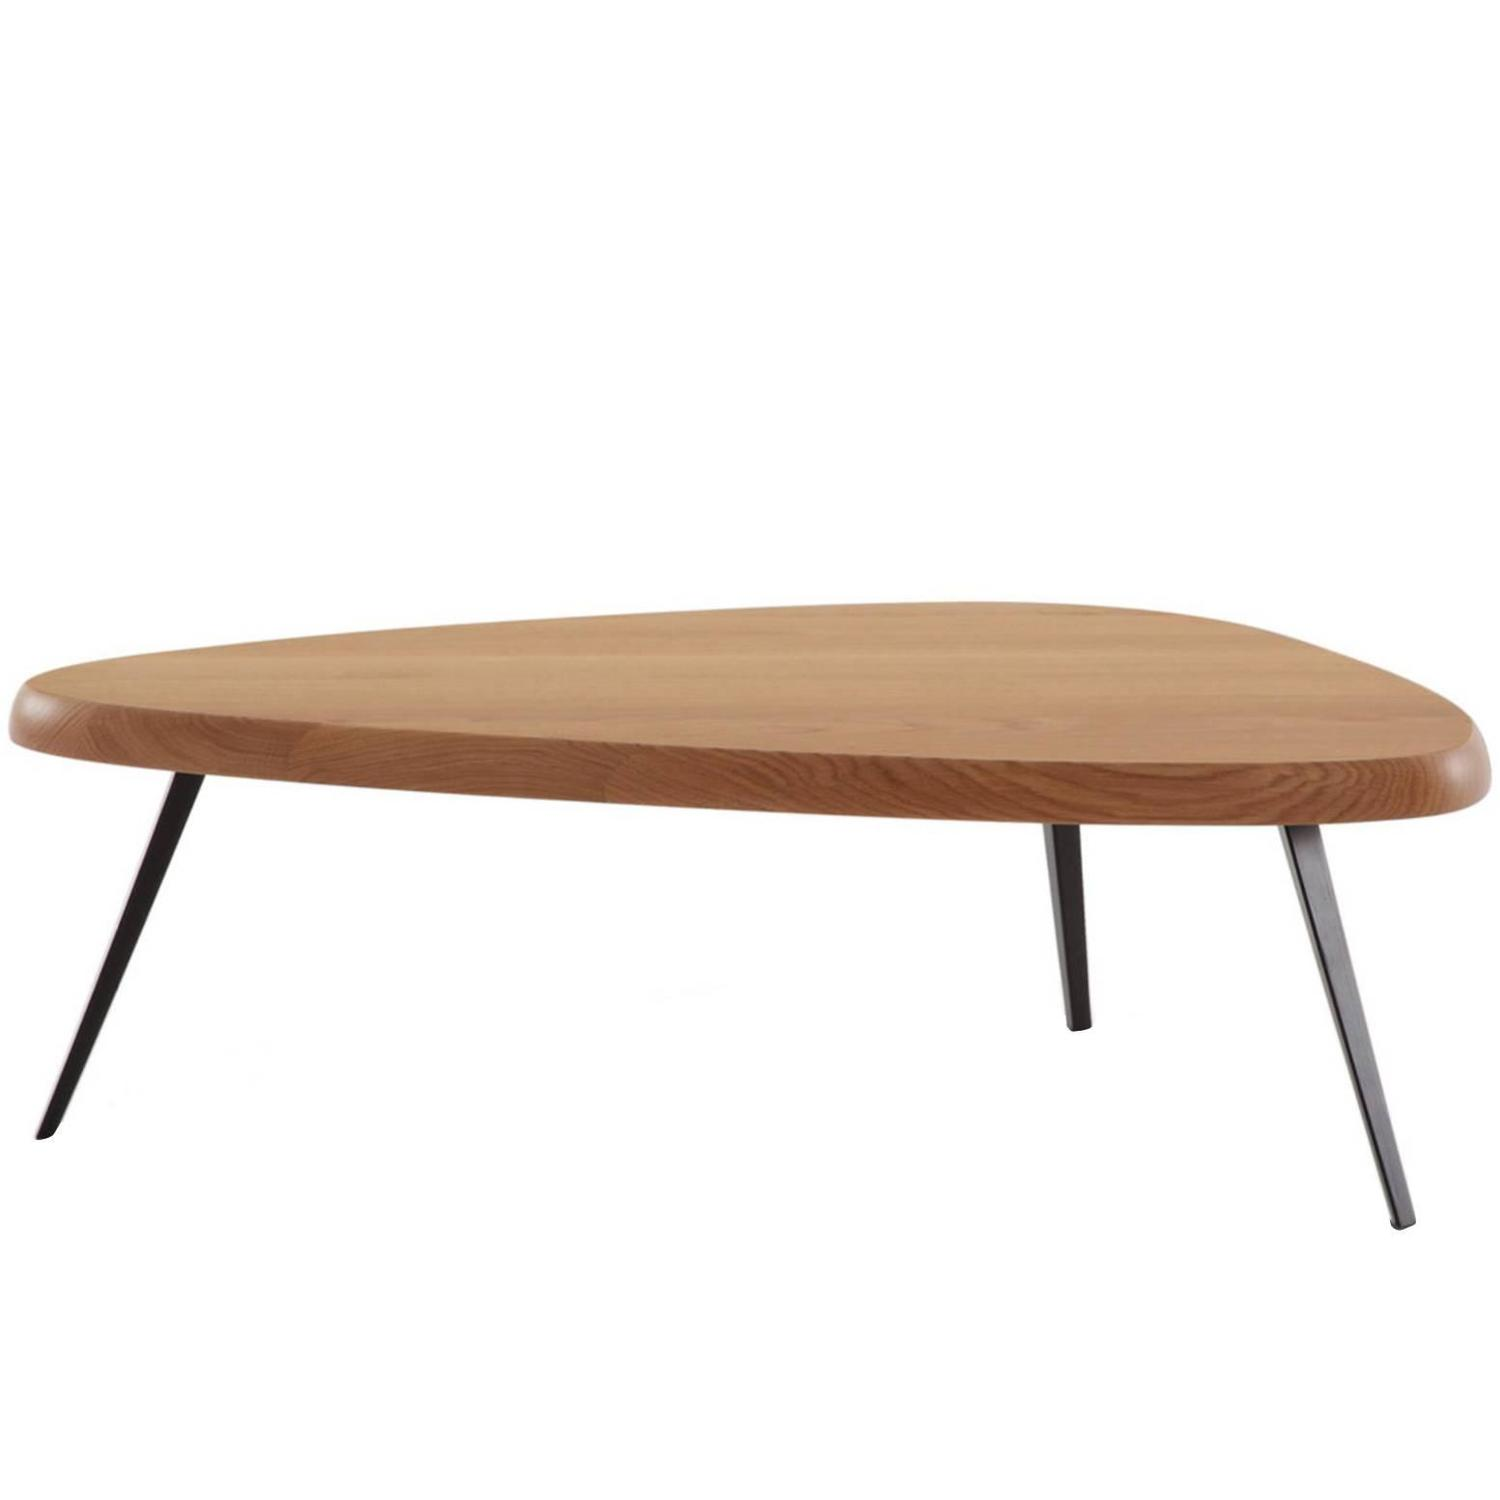 Low coffee table by charlotte perriand at 1stdibs Low wooden coffee table